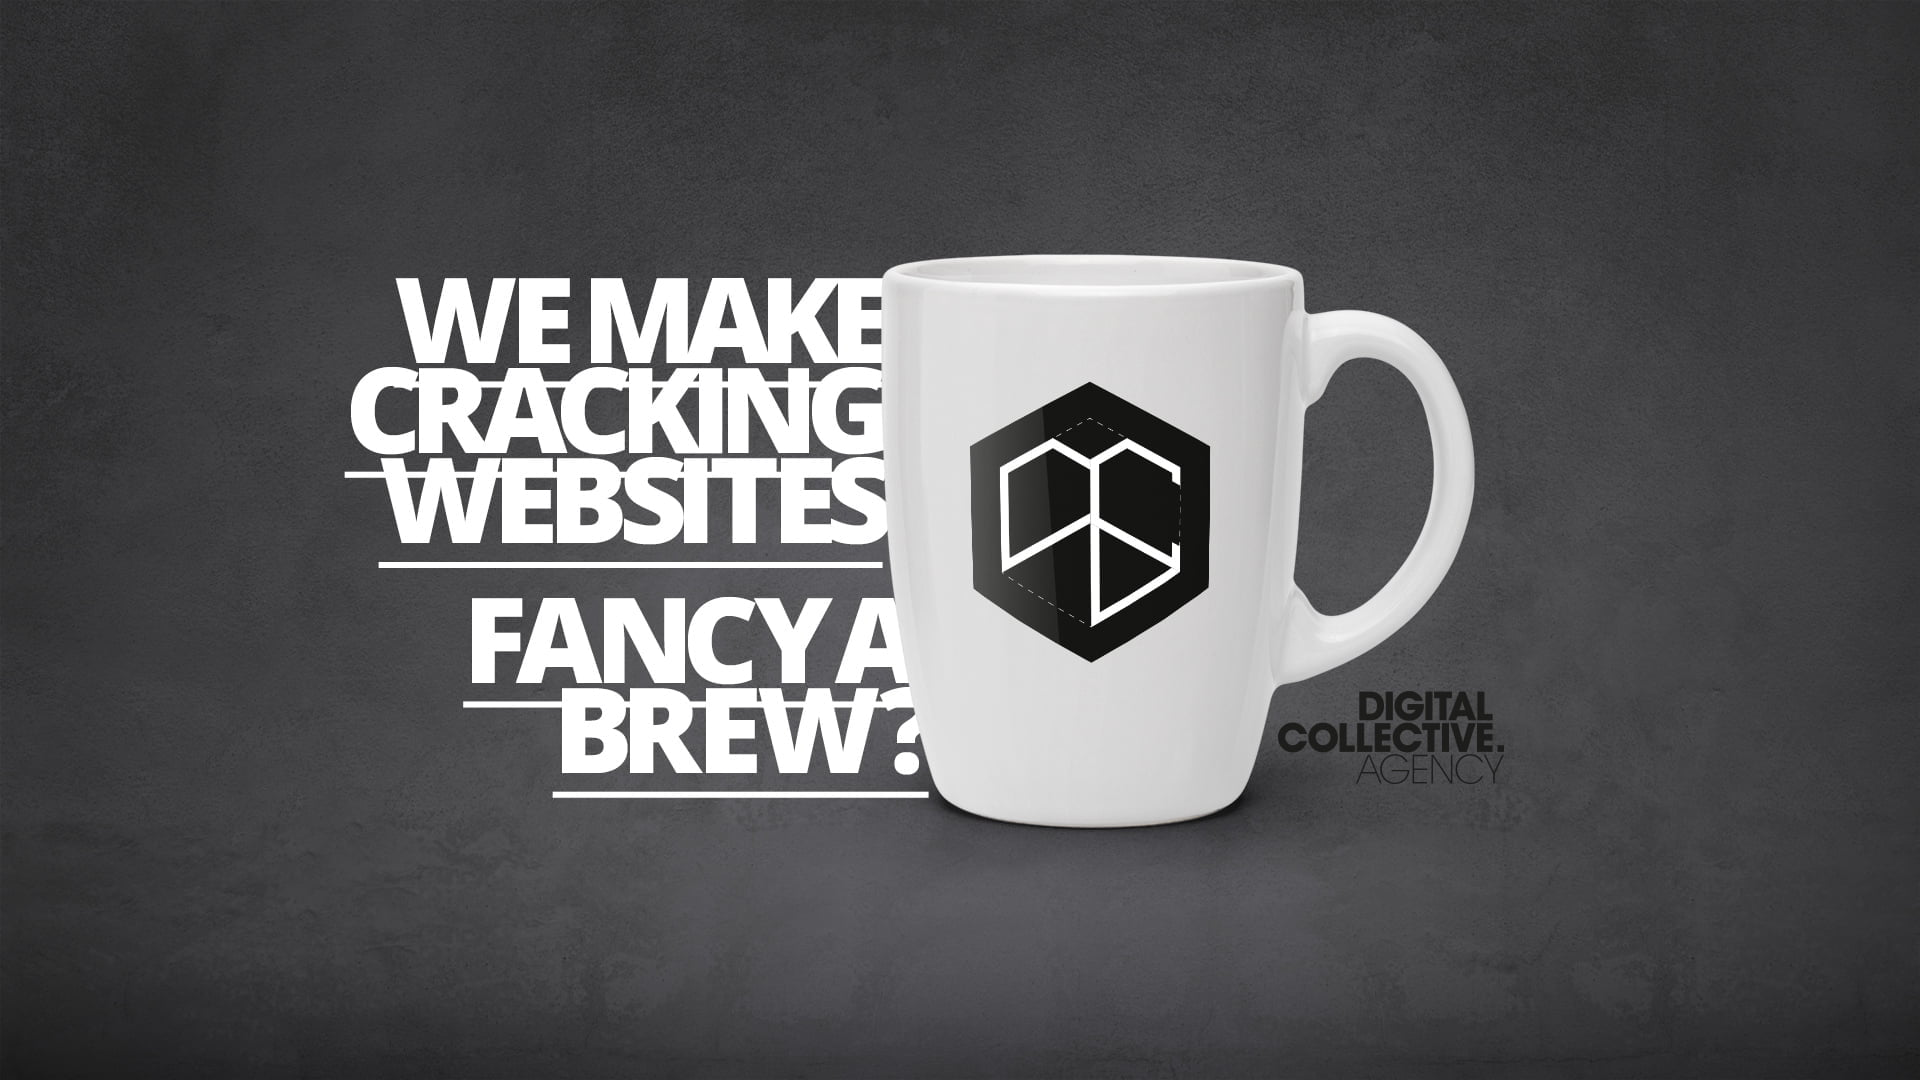 Fancy a brew with DCA